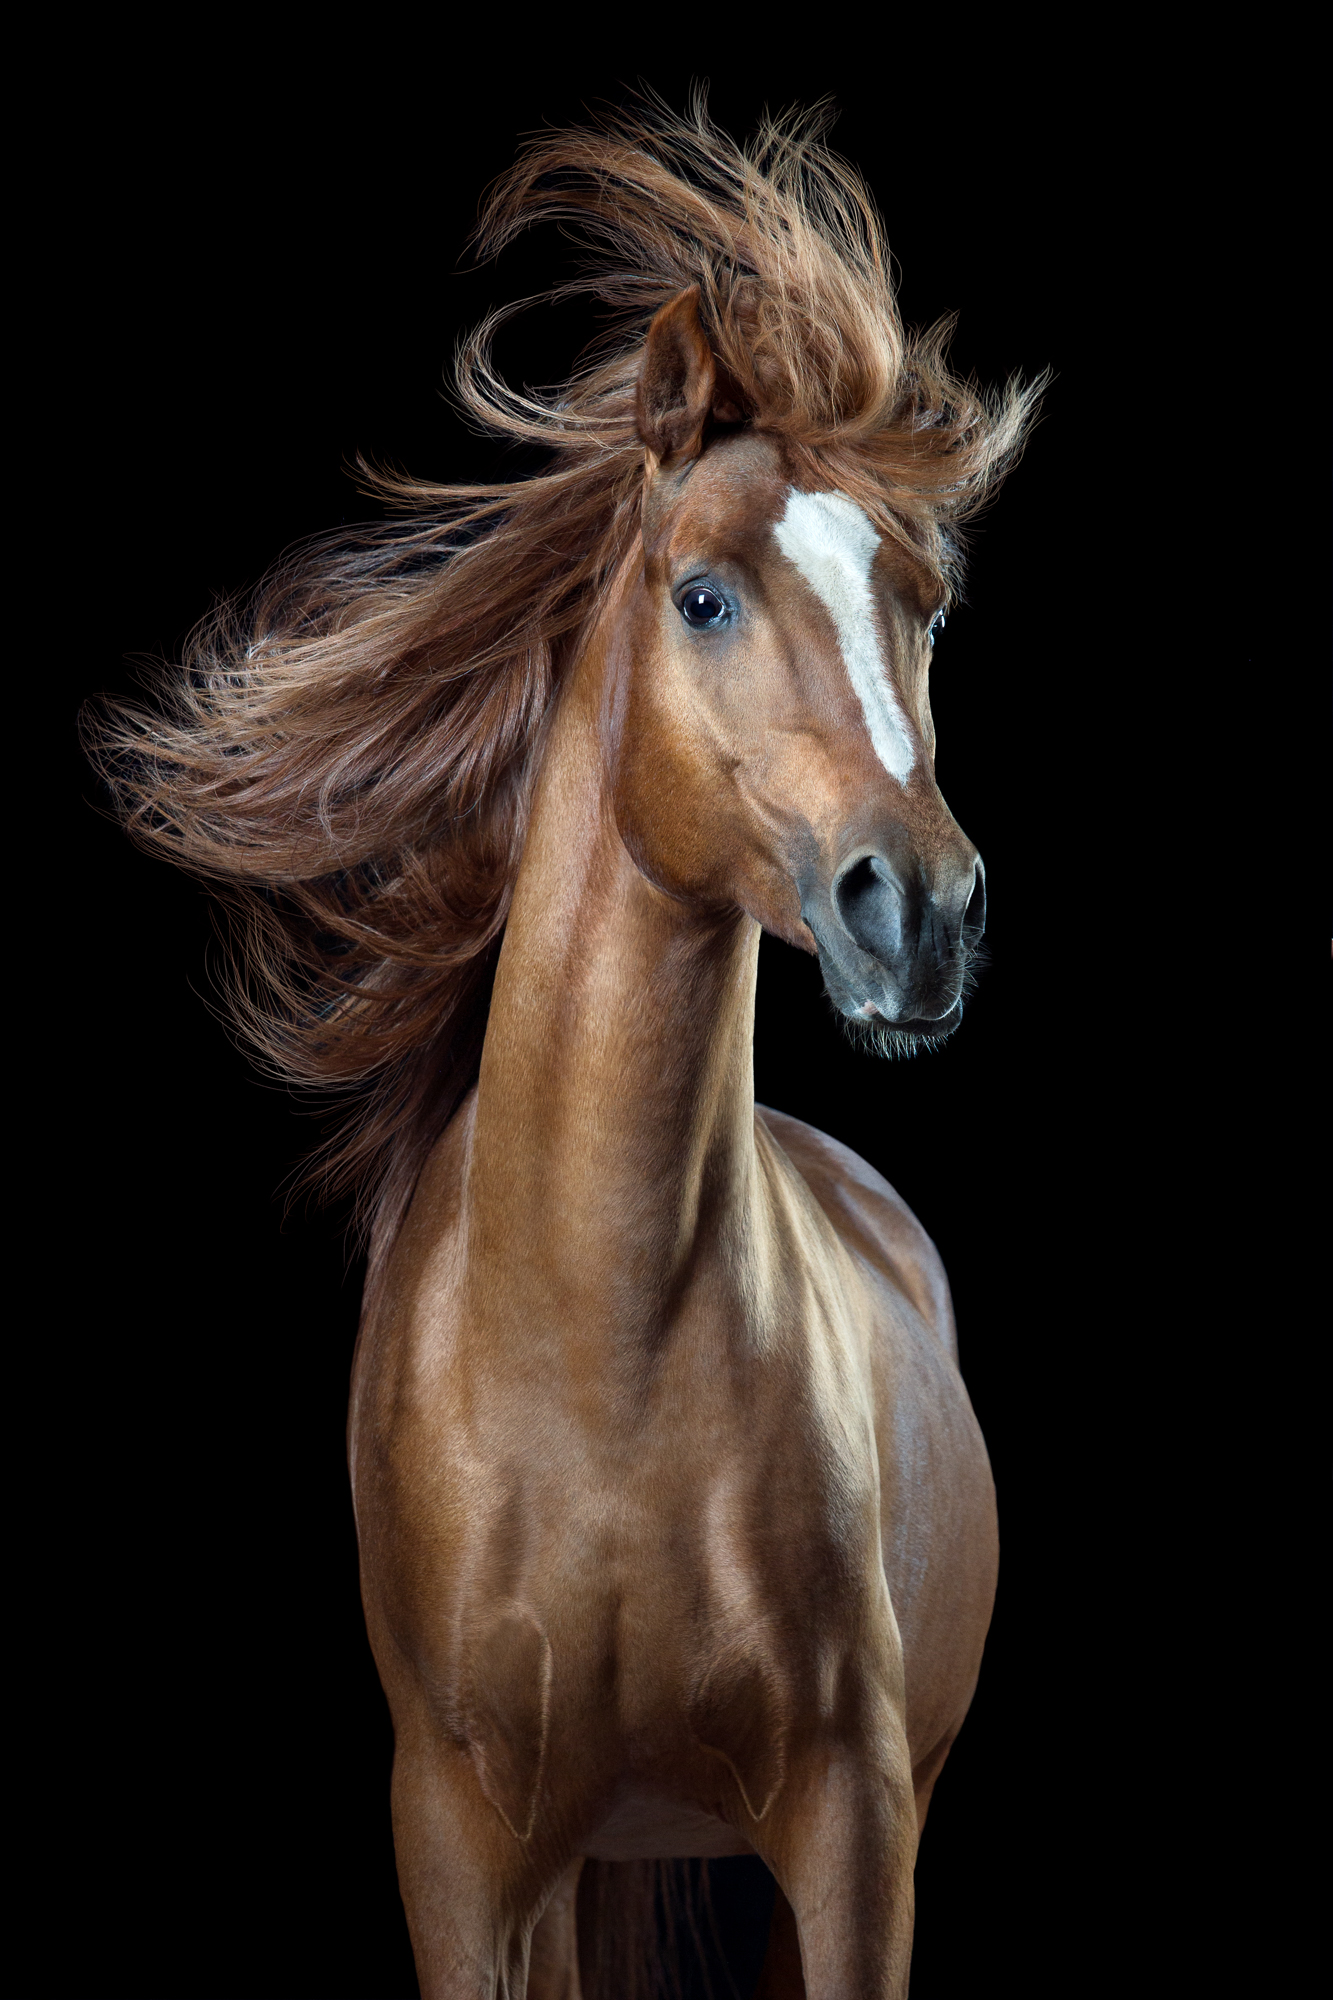 """Horsestyle"" by Wiebke Haas 